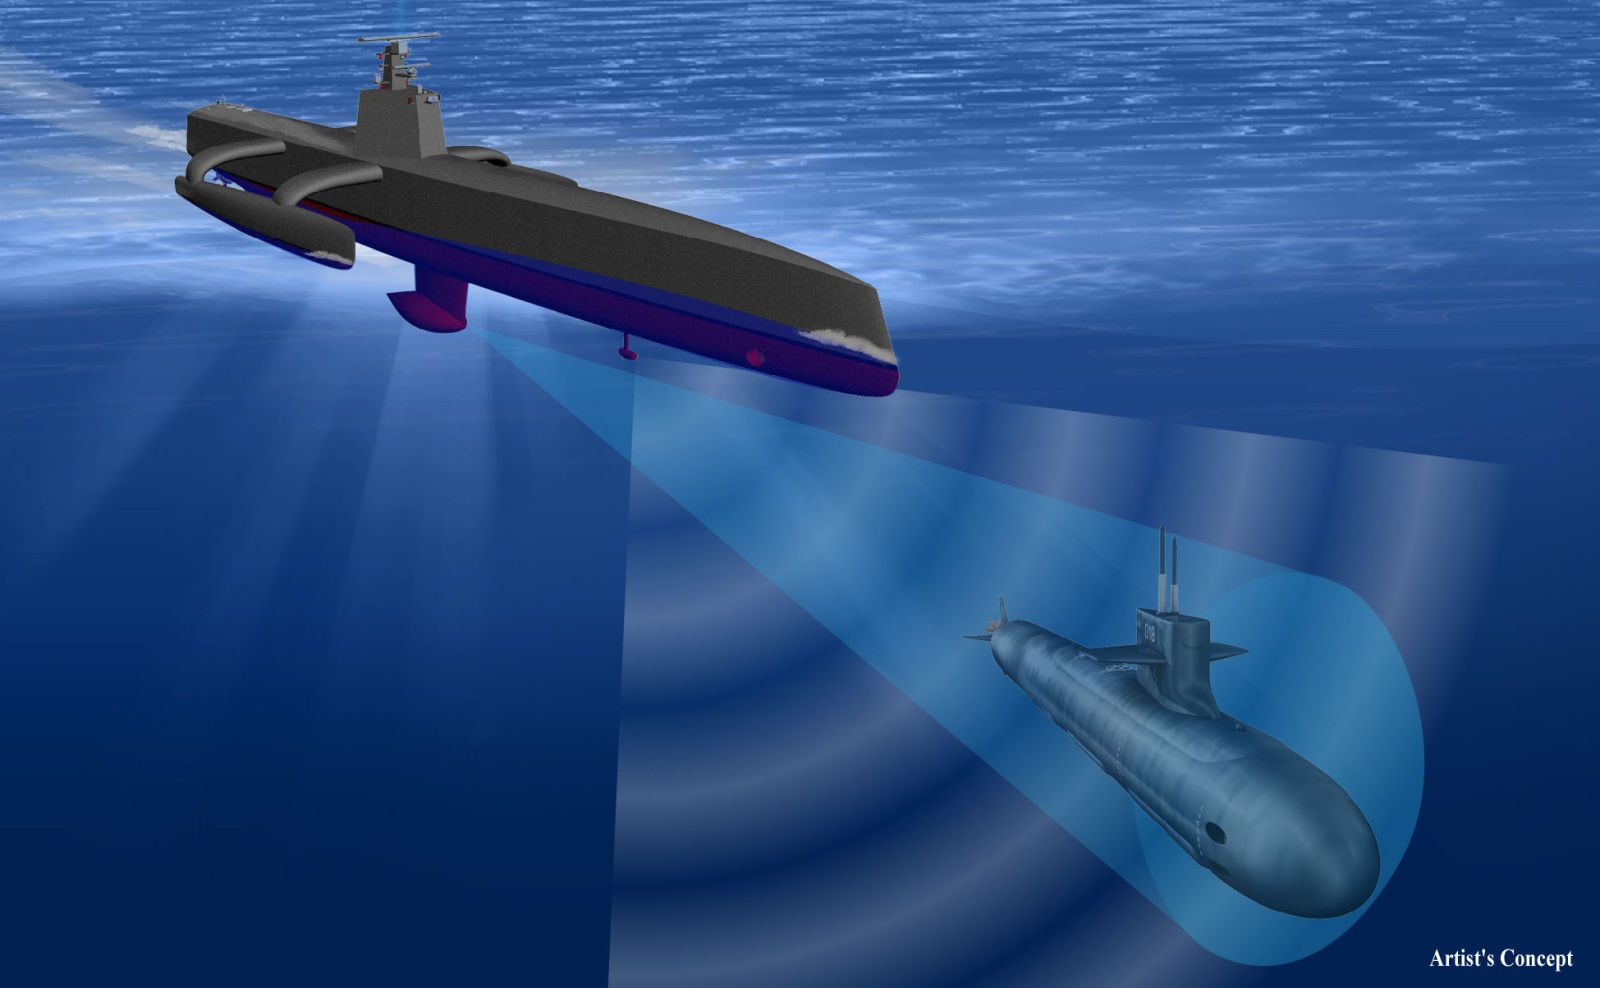 DARPA Sees a Future Battlefield With Drone Ships and Super Soldiers